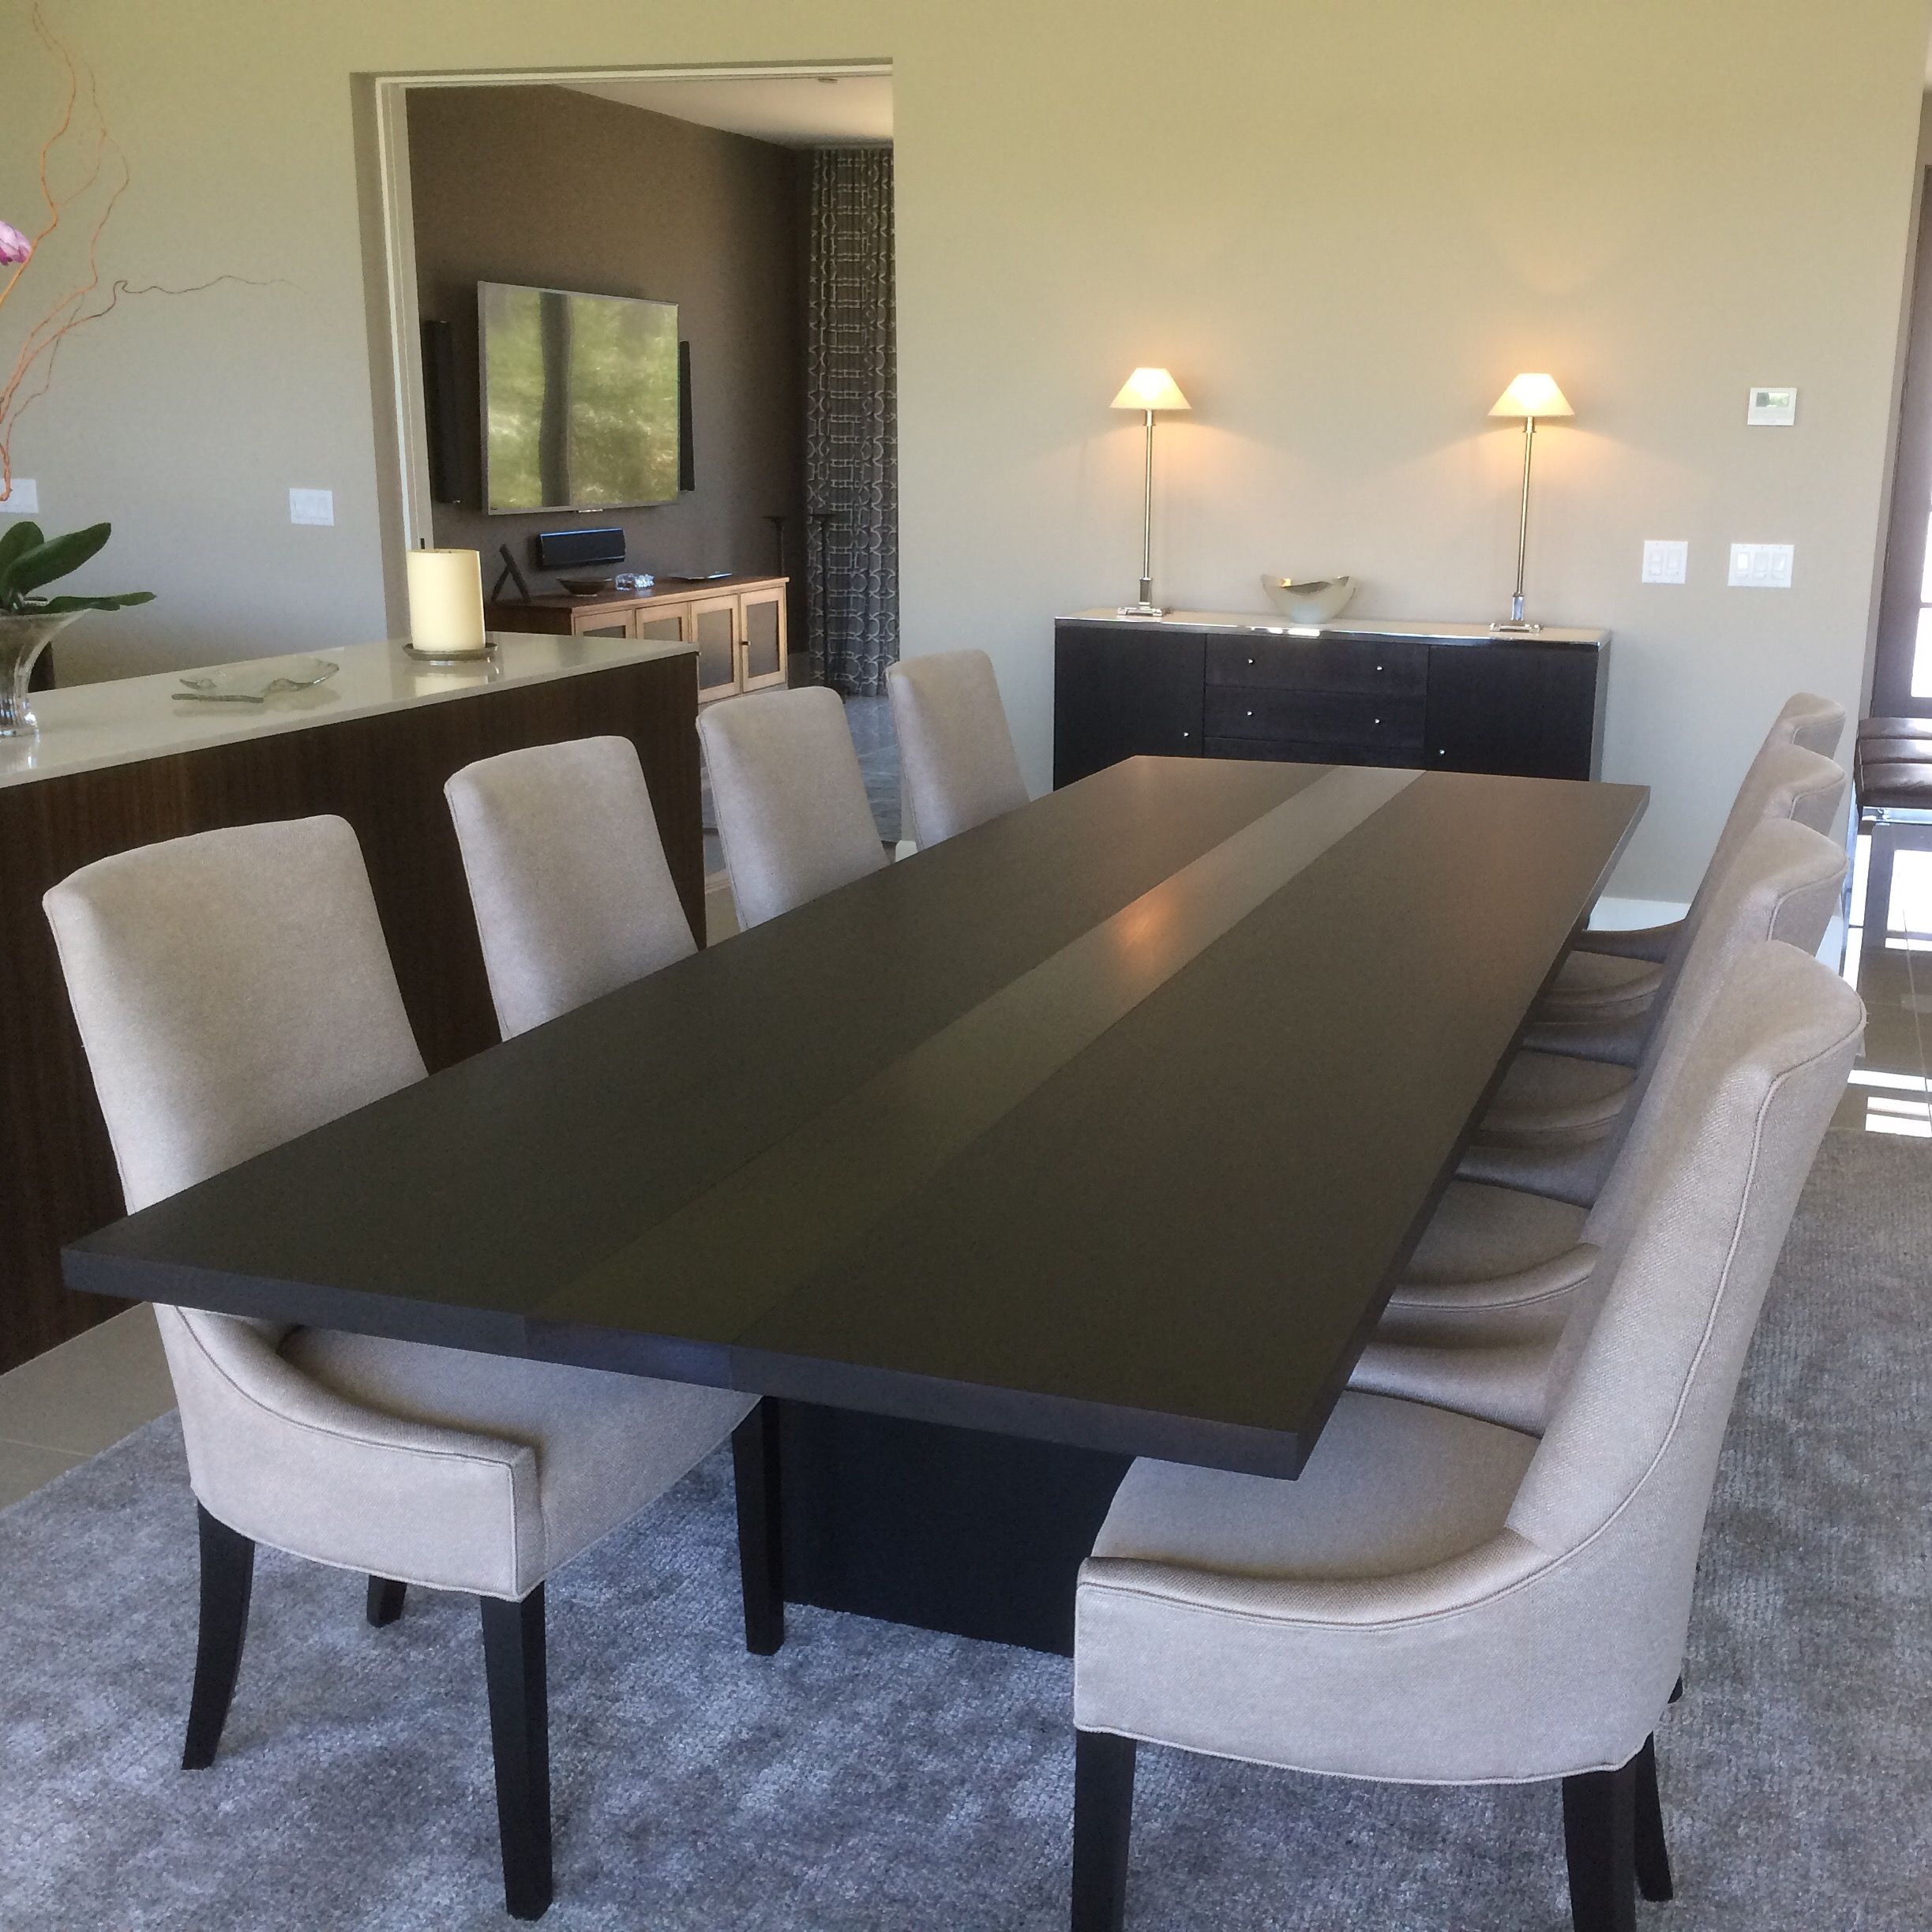 Handmade modern dining table by bedre woodworking for Modern dining room table